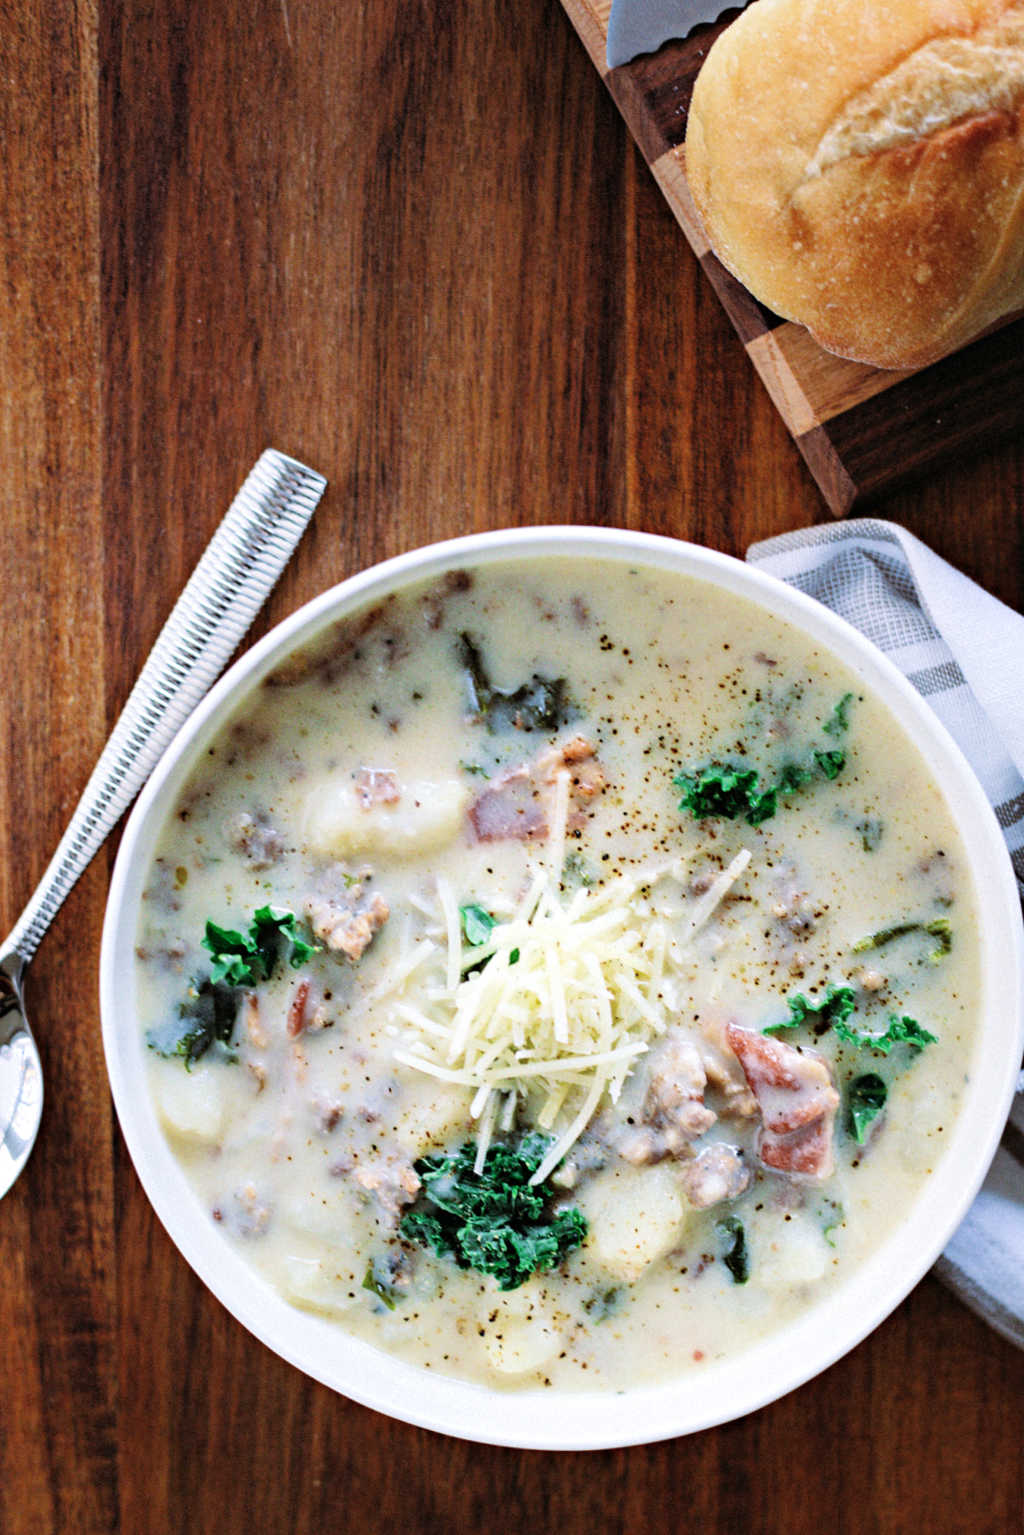 a bowl of zuppa toscana soup on a wooden table